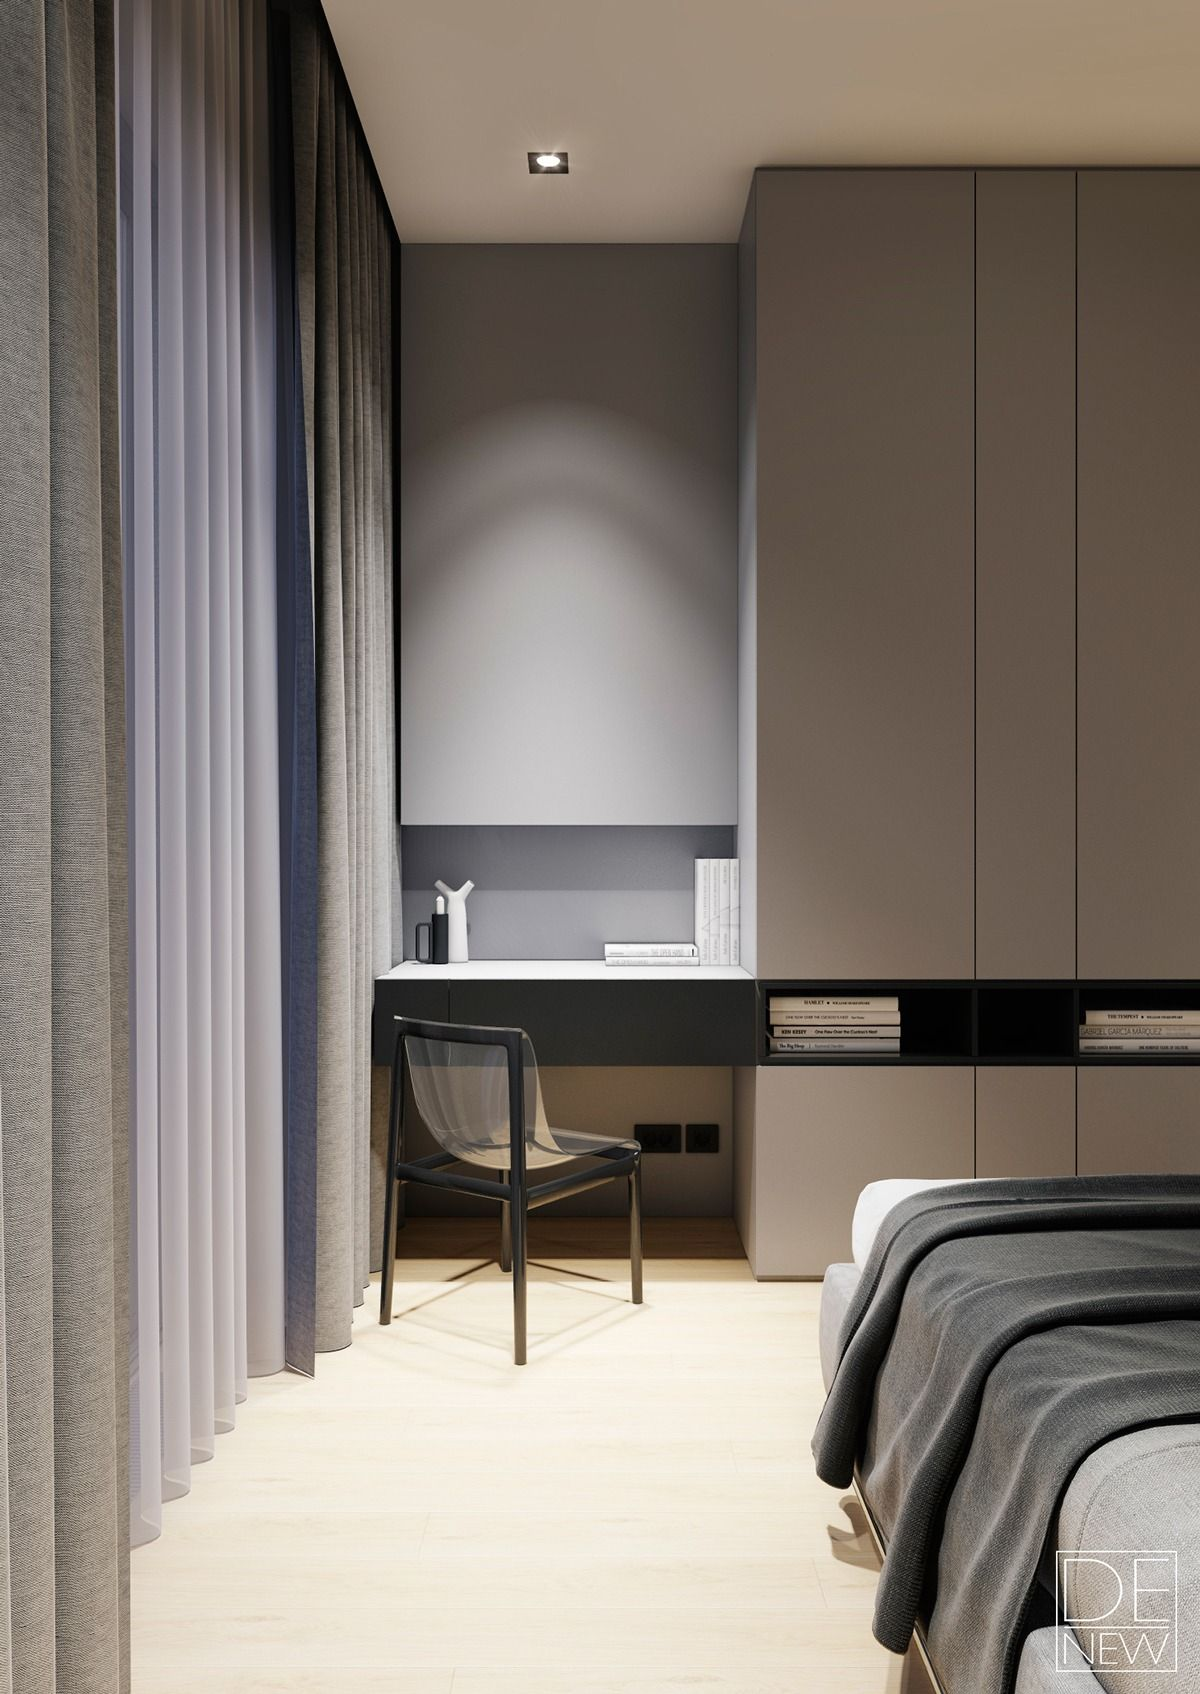 Hotel Room Desk: The Master Bedroom Expresses Texture In A Much More